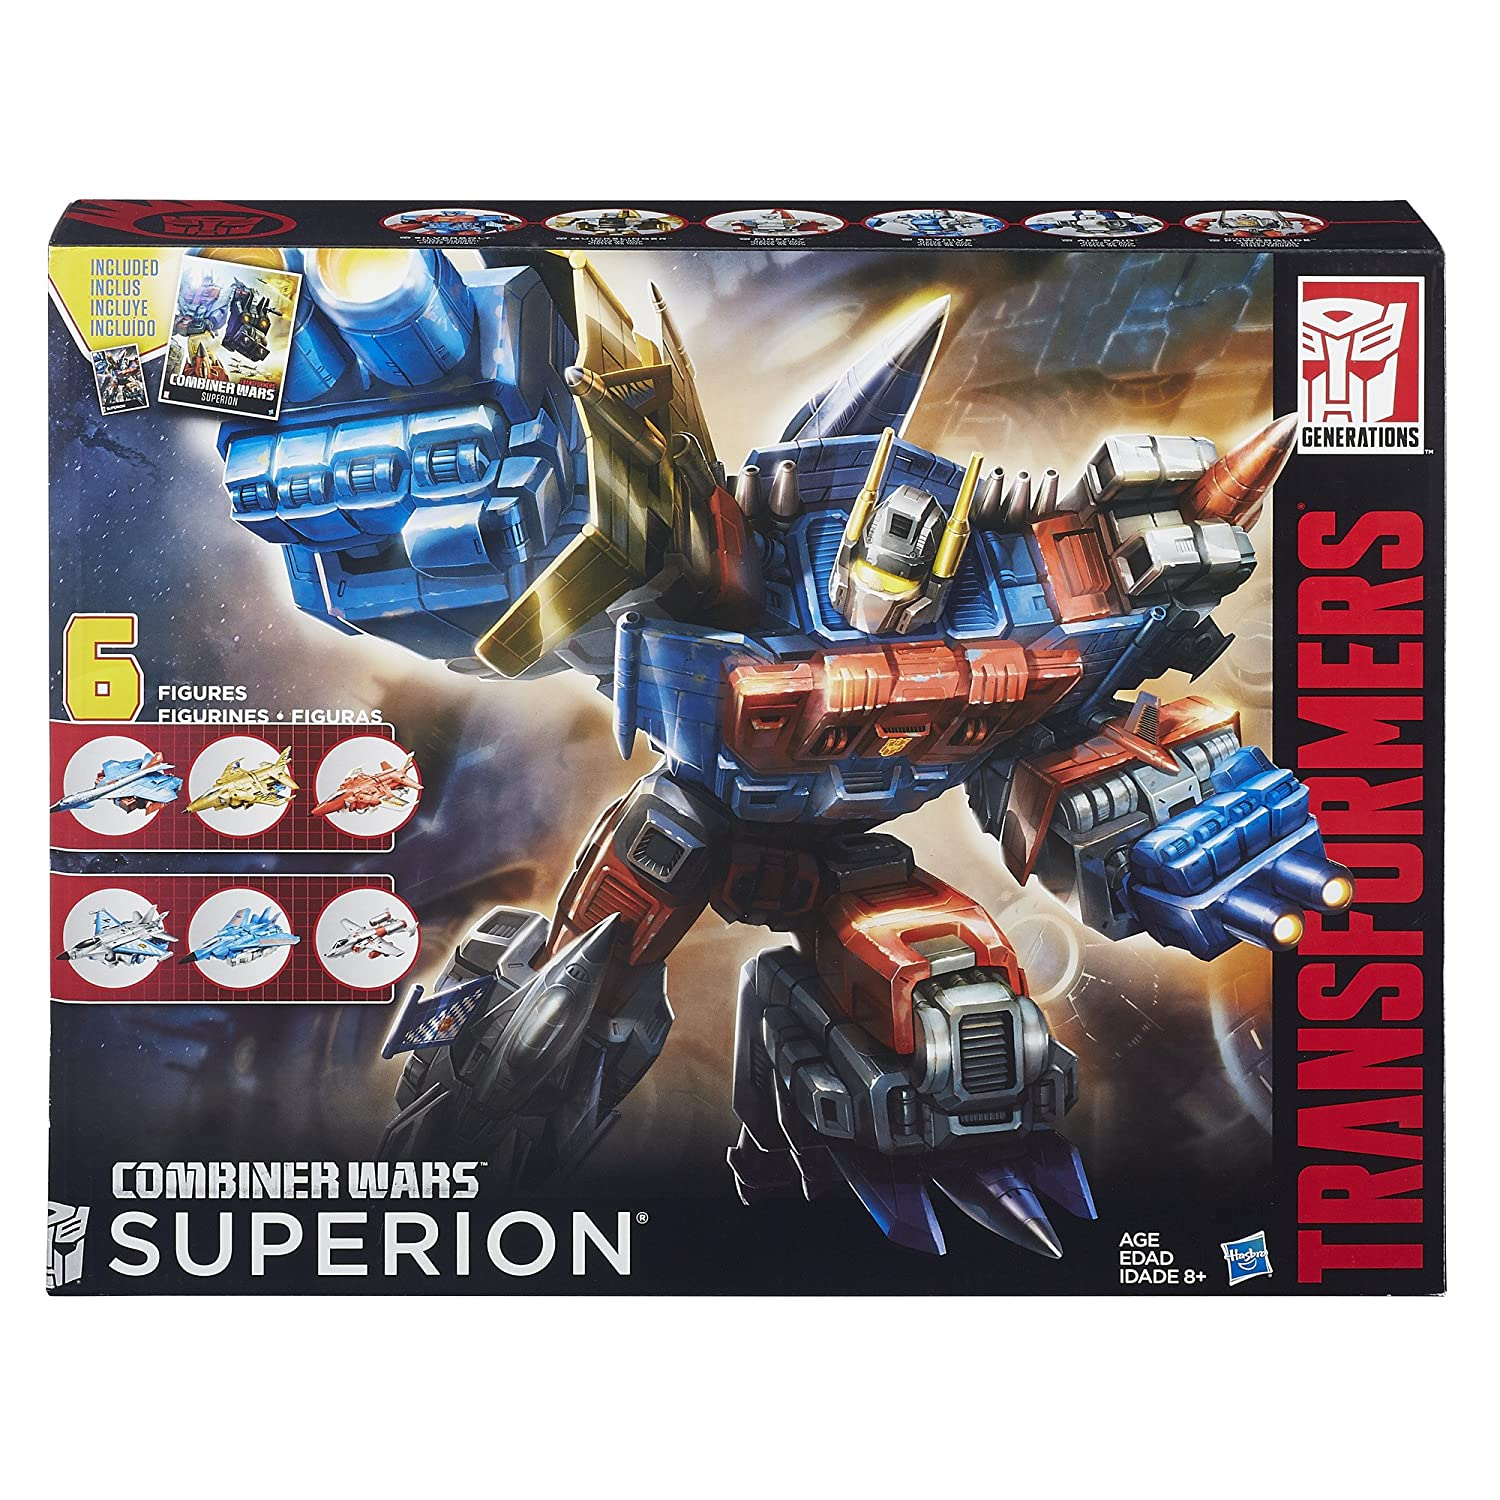 Image result for combiner wars superion